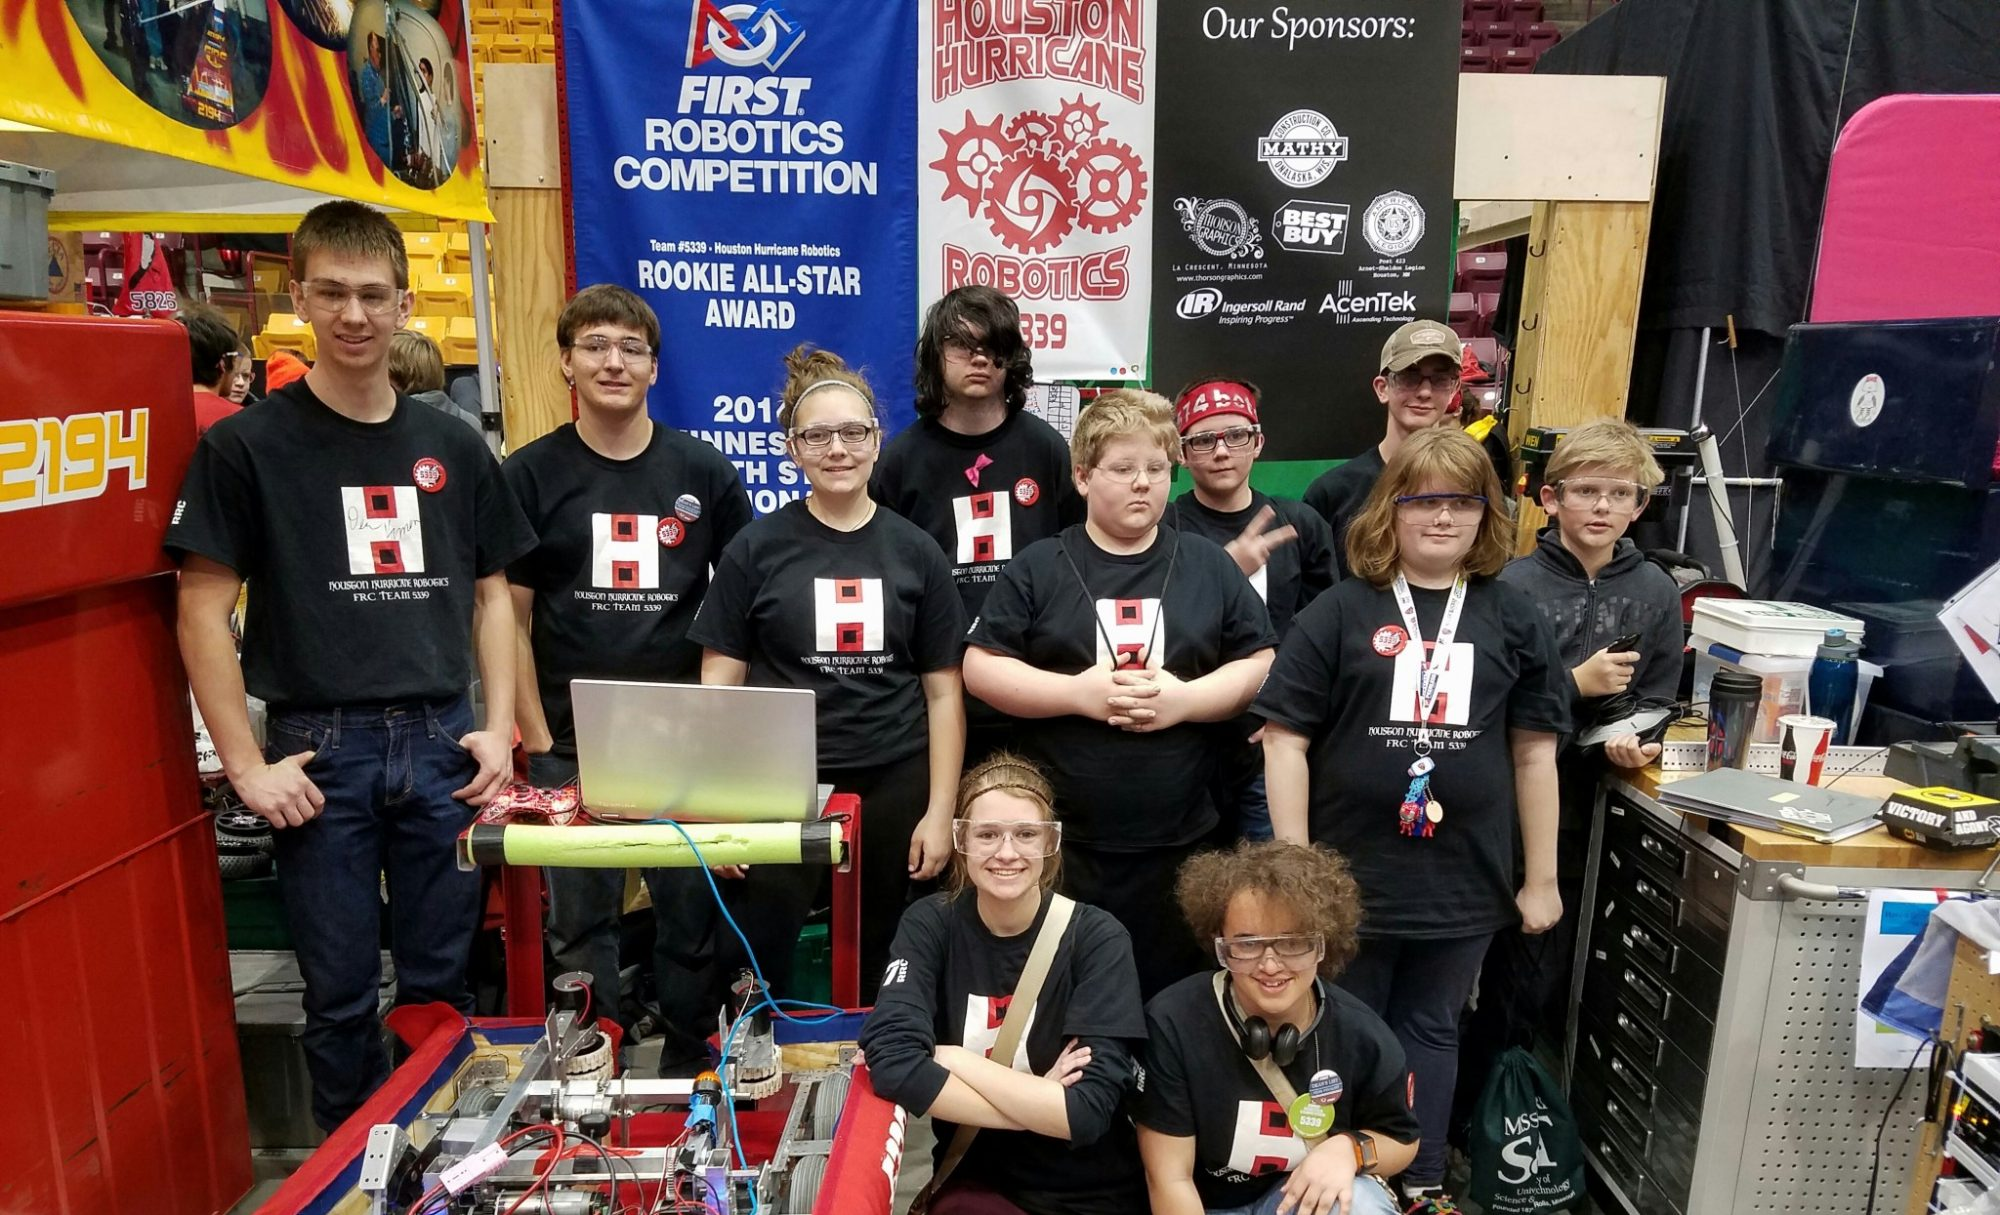 Houston Hurricane Robotics